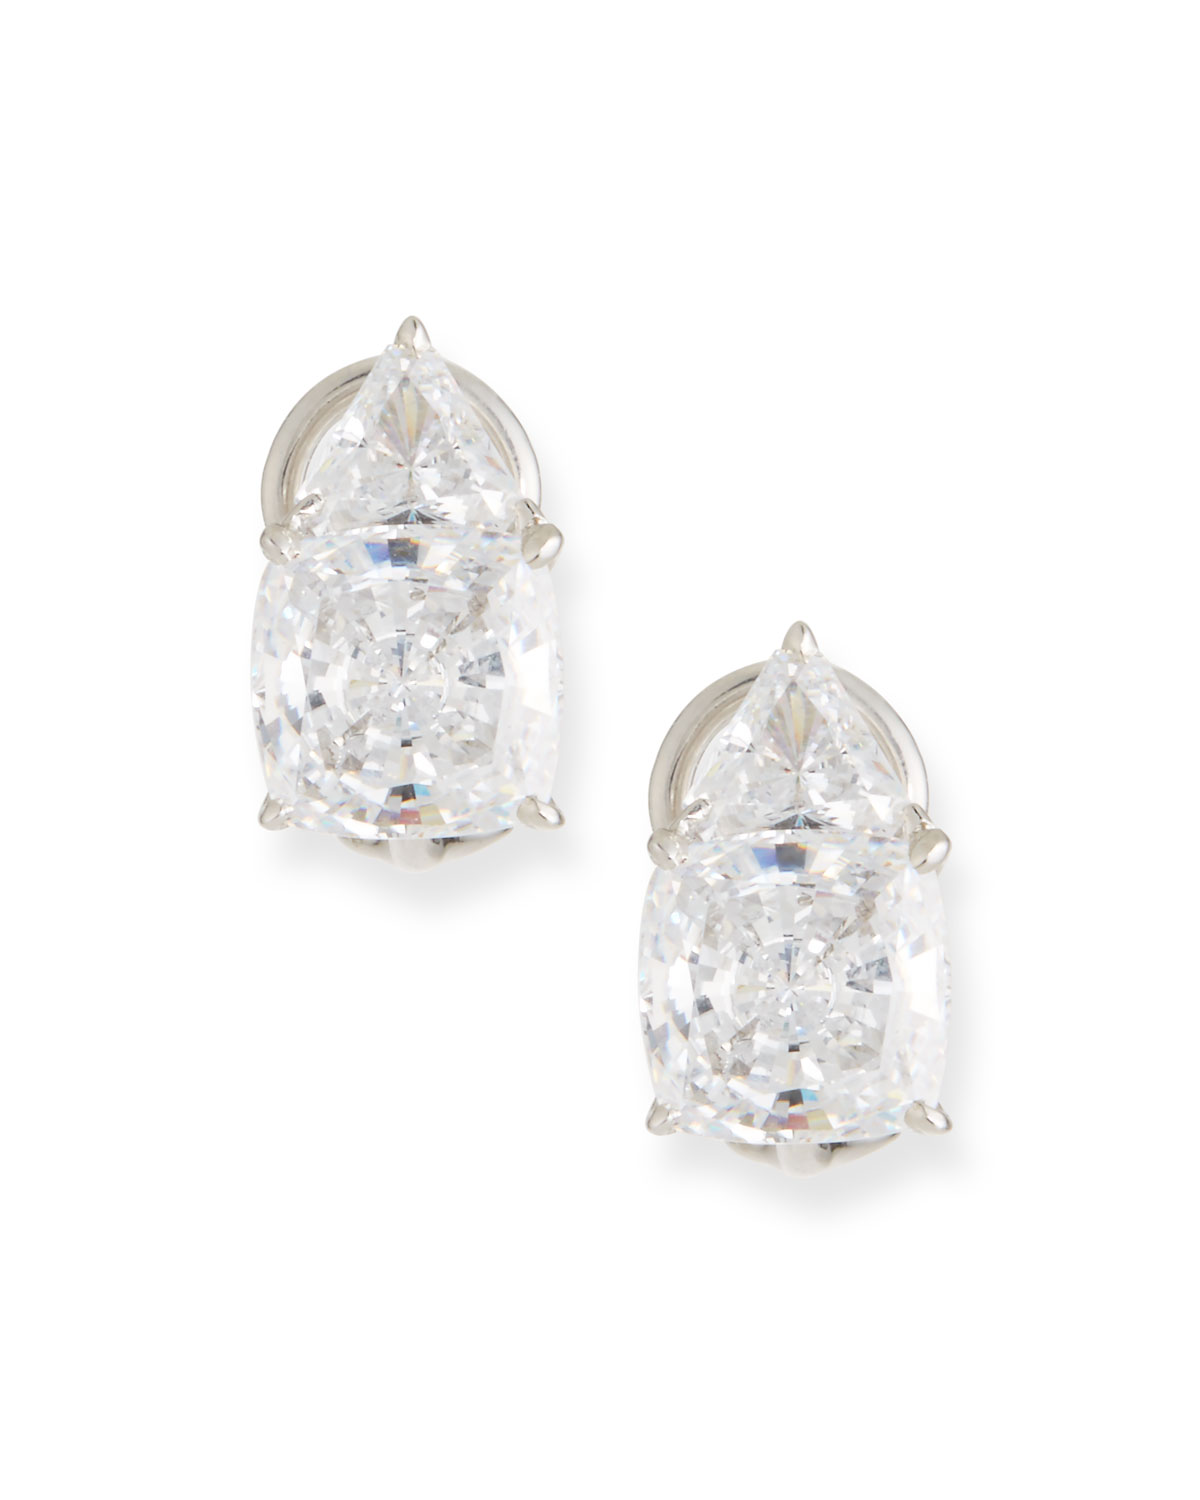 FANTASIA BY DESERIO Trillion & Cushion Cubic Zirconia Earrings